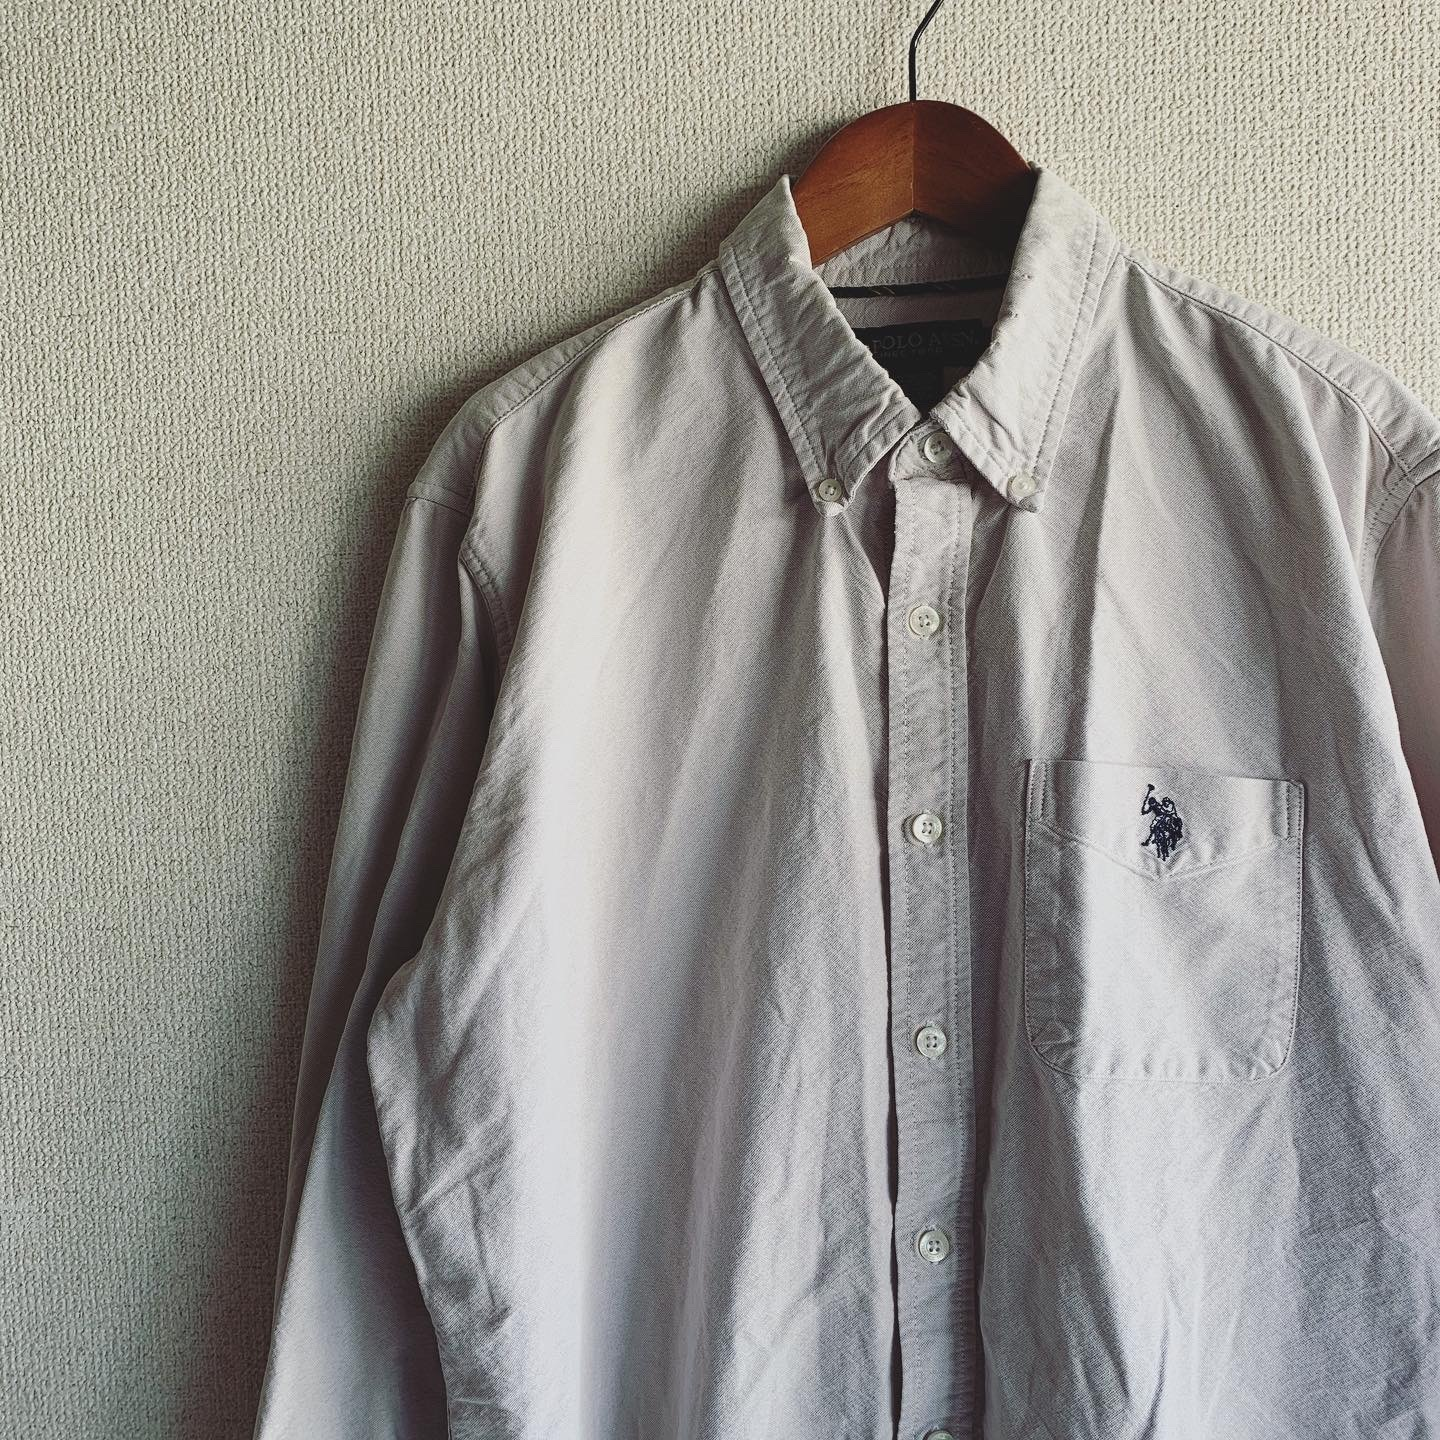 【SALE】US polo shirts